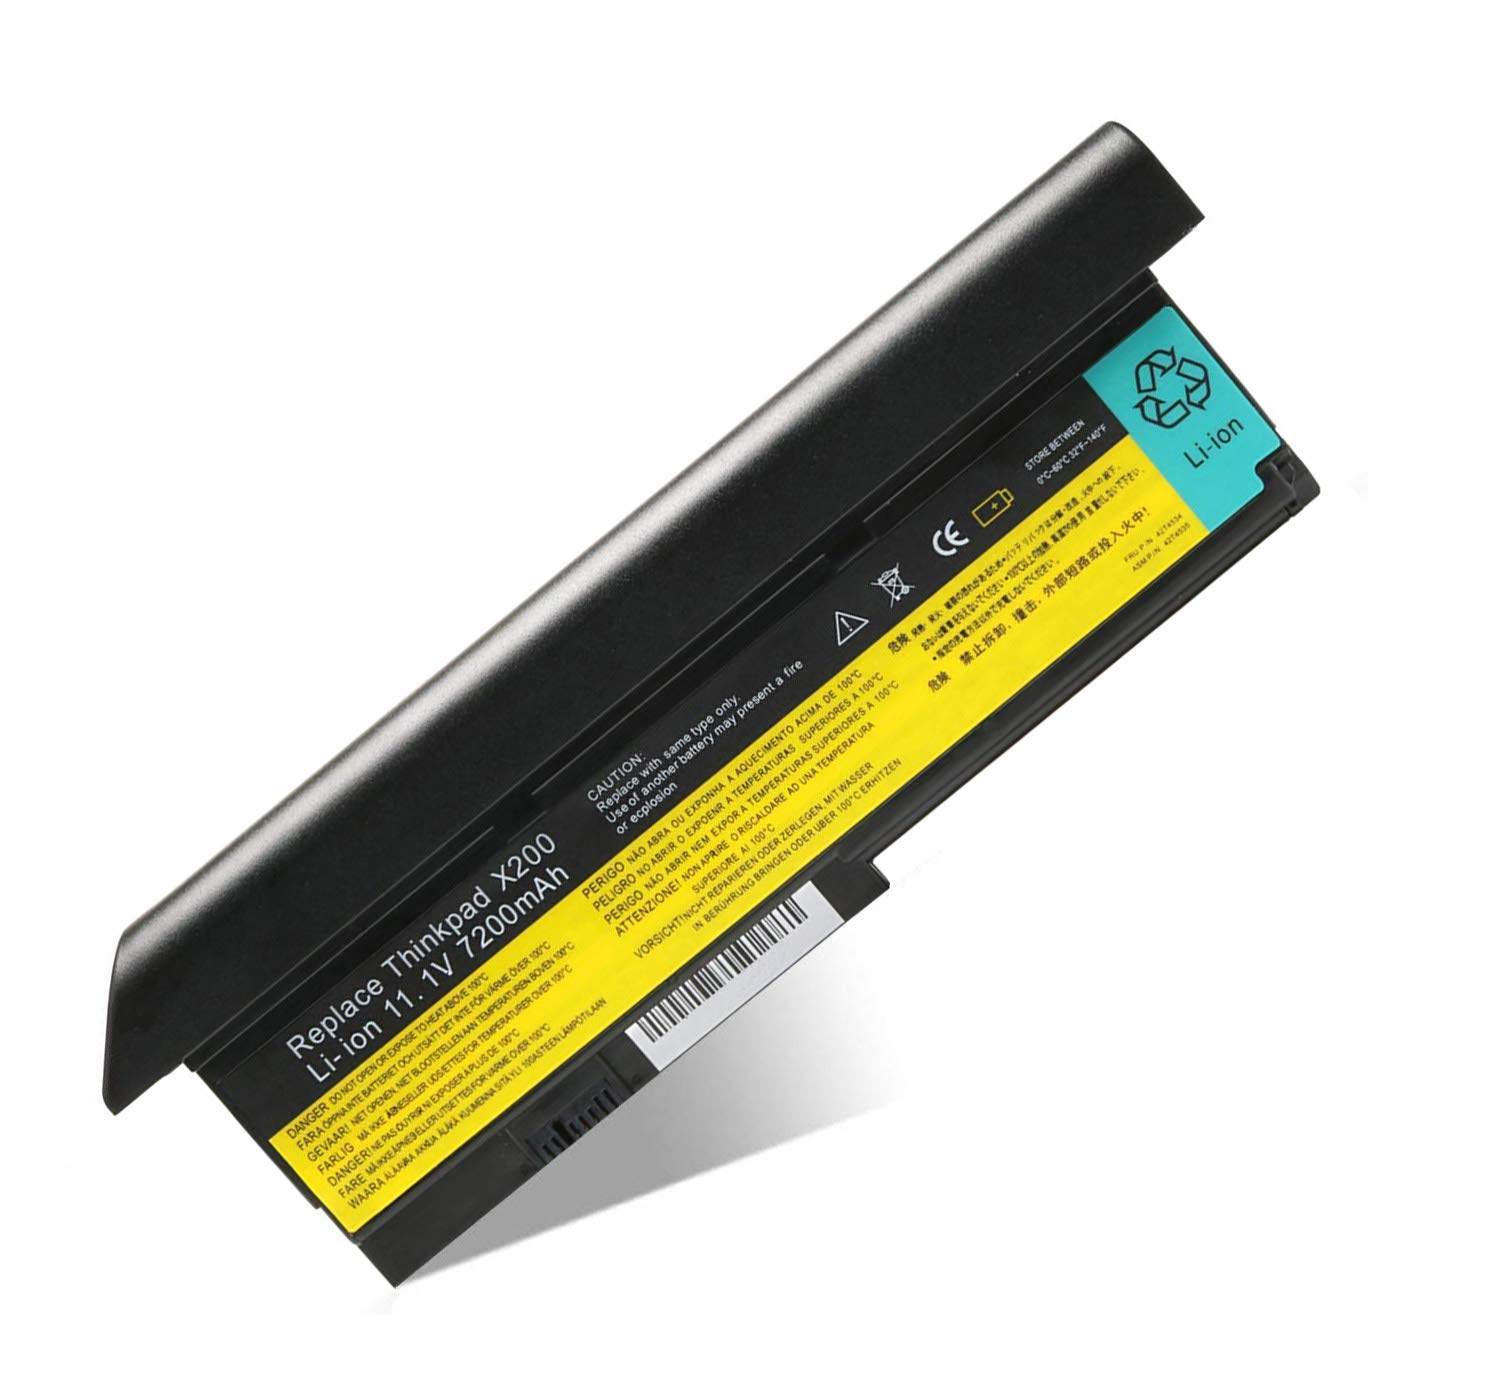 Amazon.com: New X200 Replacement Laptop Battery for Lenovo ...